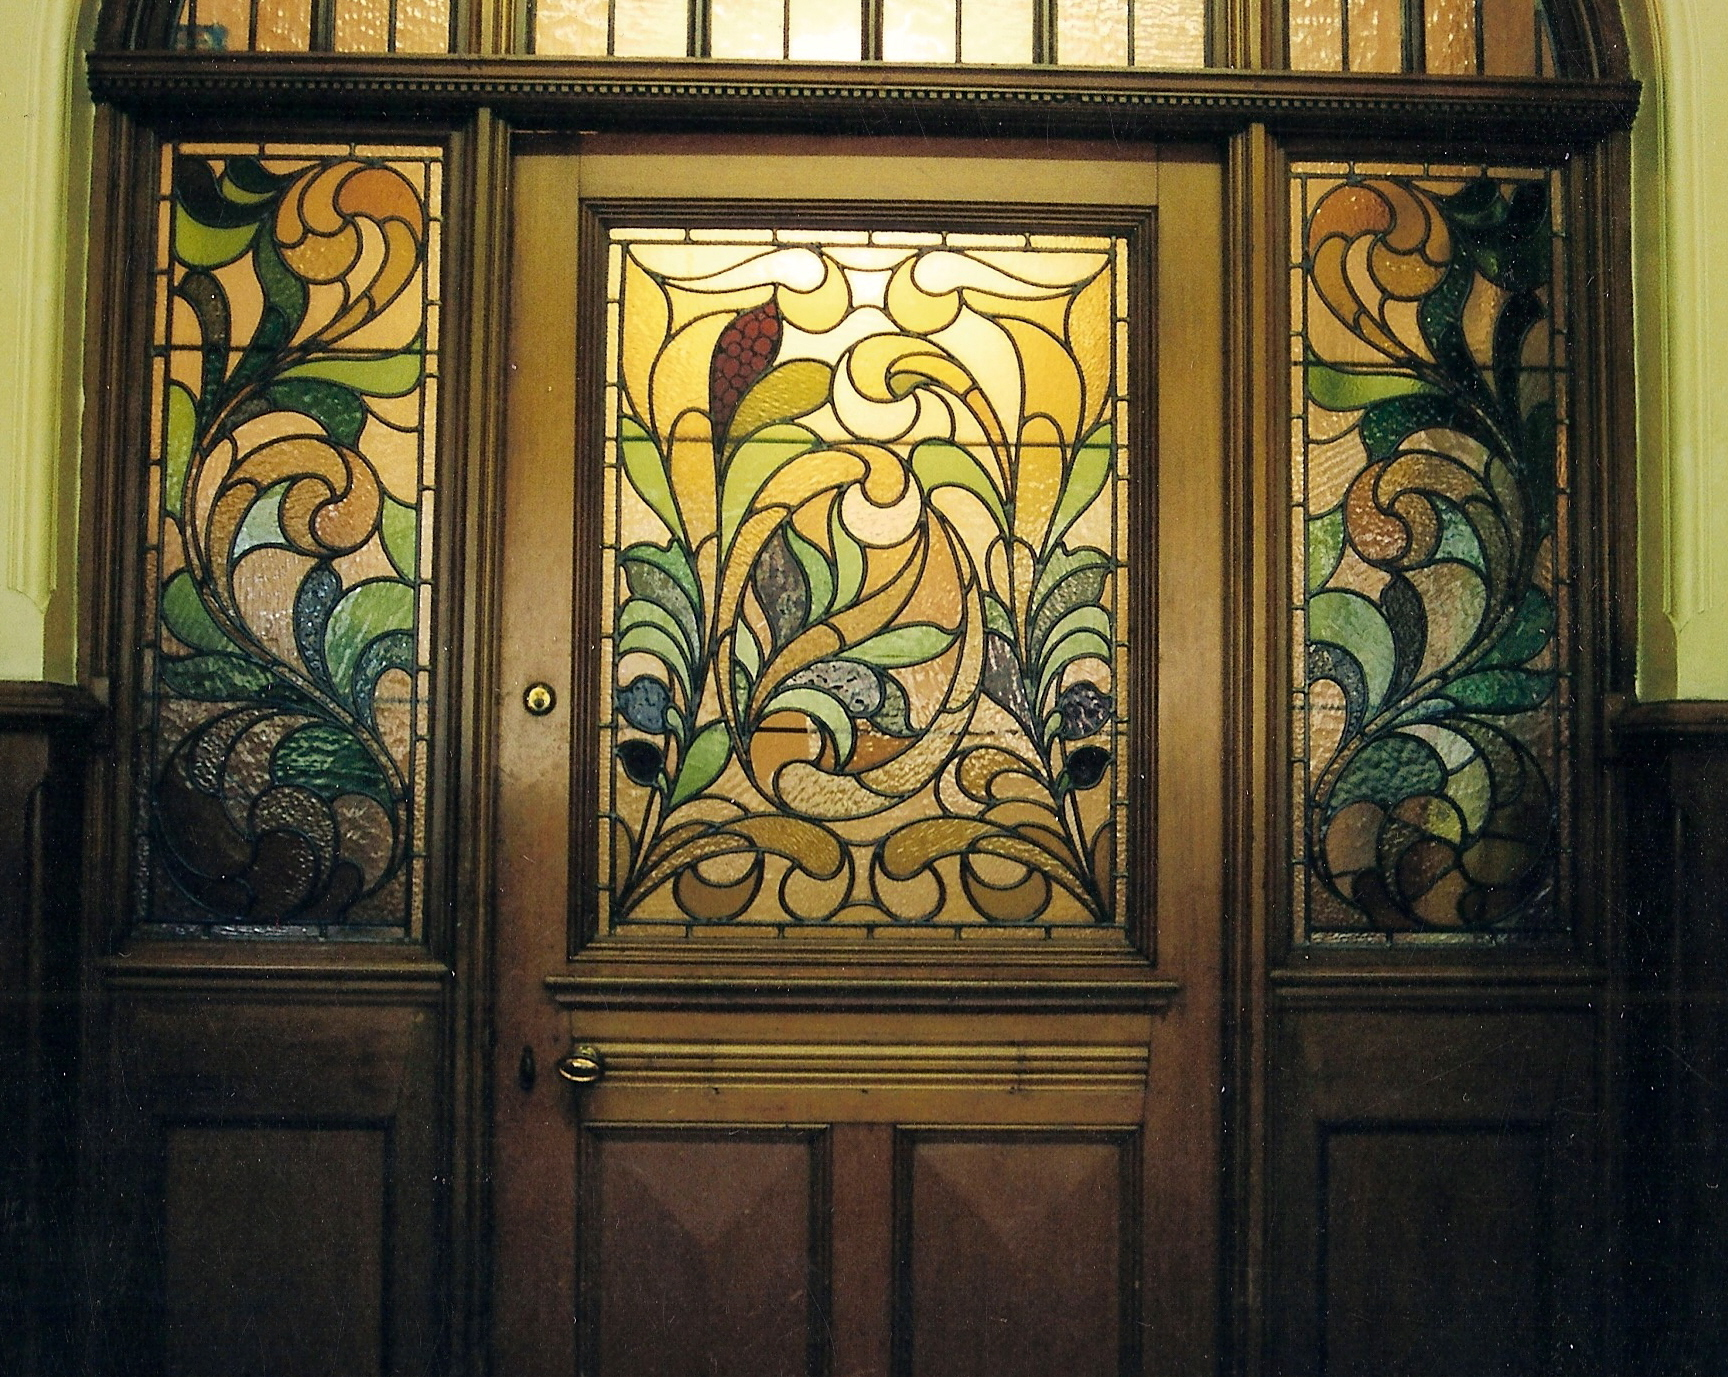 1377 #BCA50F Stained Glass Door With Stained Glass Side Windows With Floral Pattern wallpaper Stained Glass Front Doors 40151728